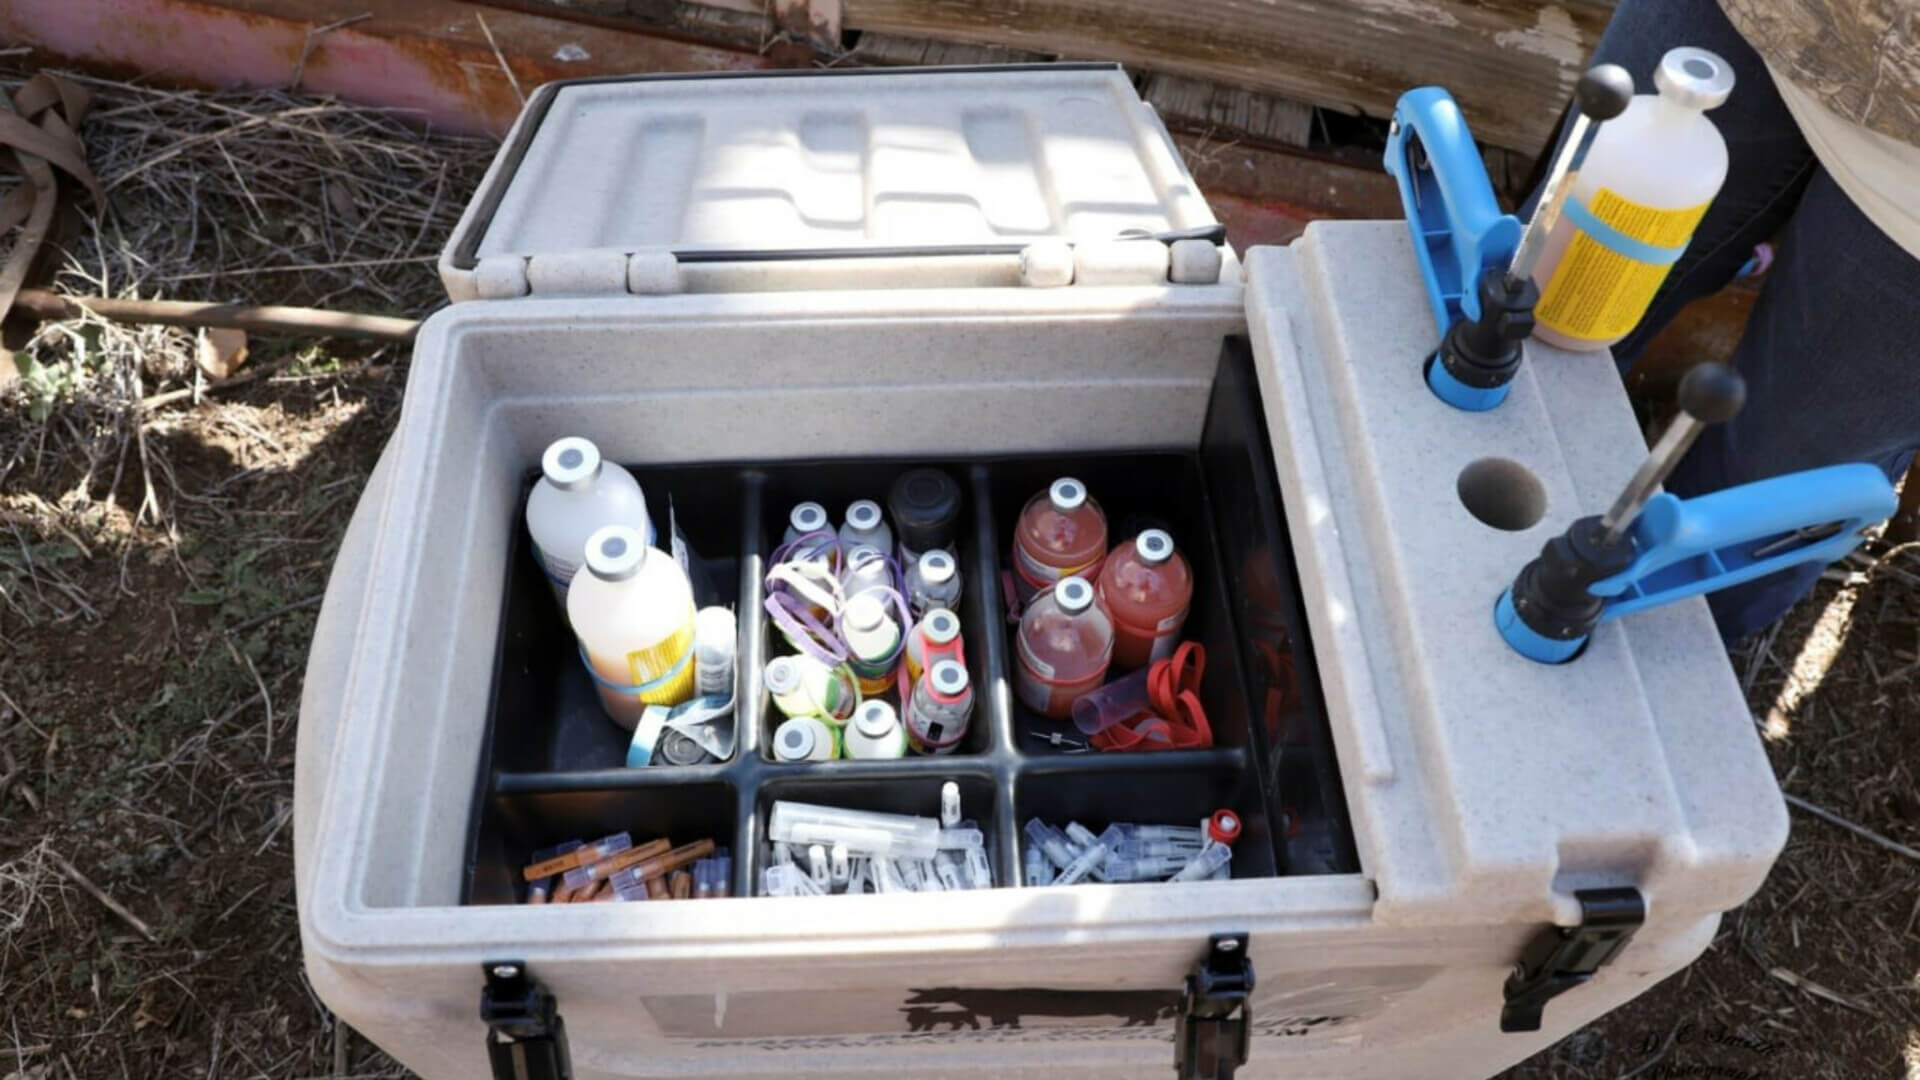 Vaccine Cooler being used